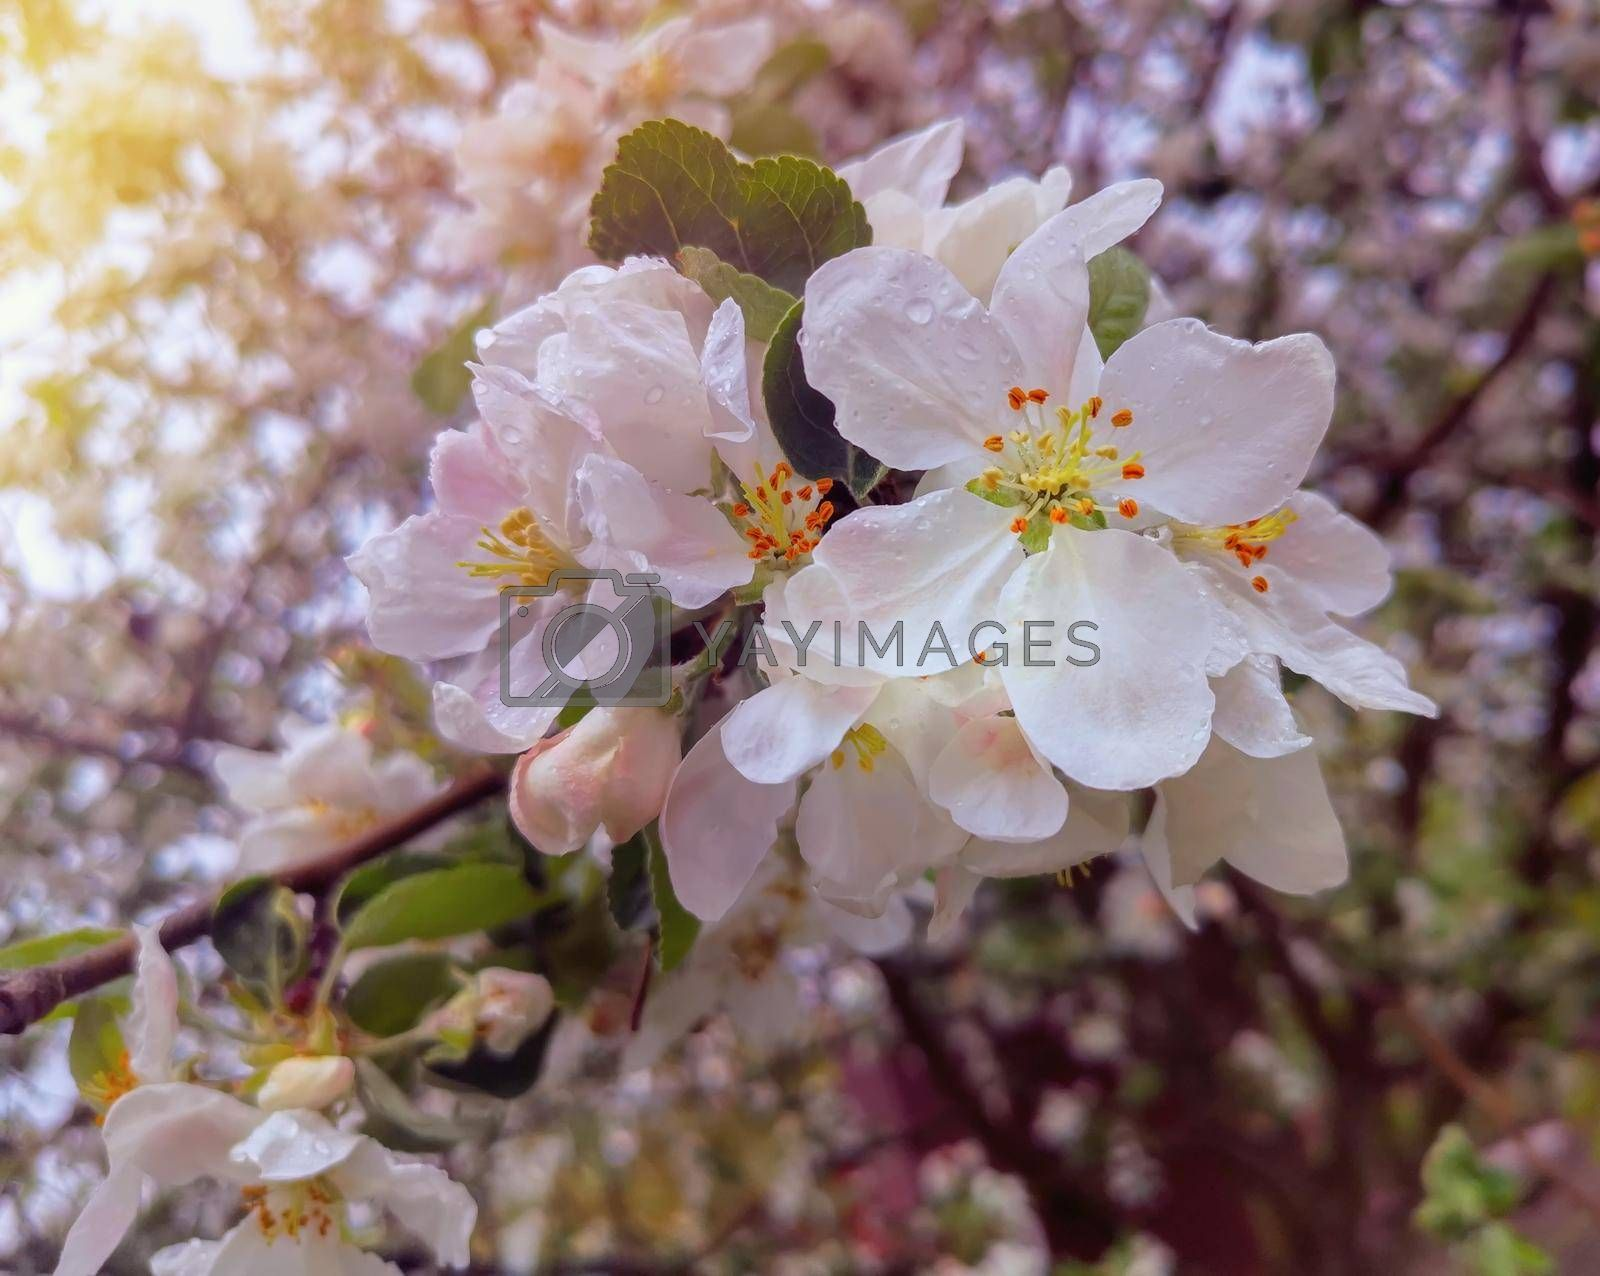 Royalty free image of The branches of Apple trees, profusely covered with white flowers. by georgina198